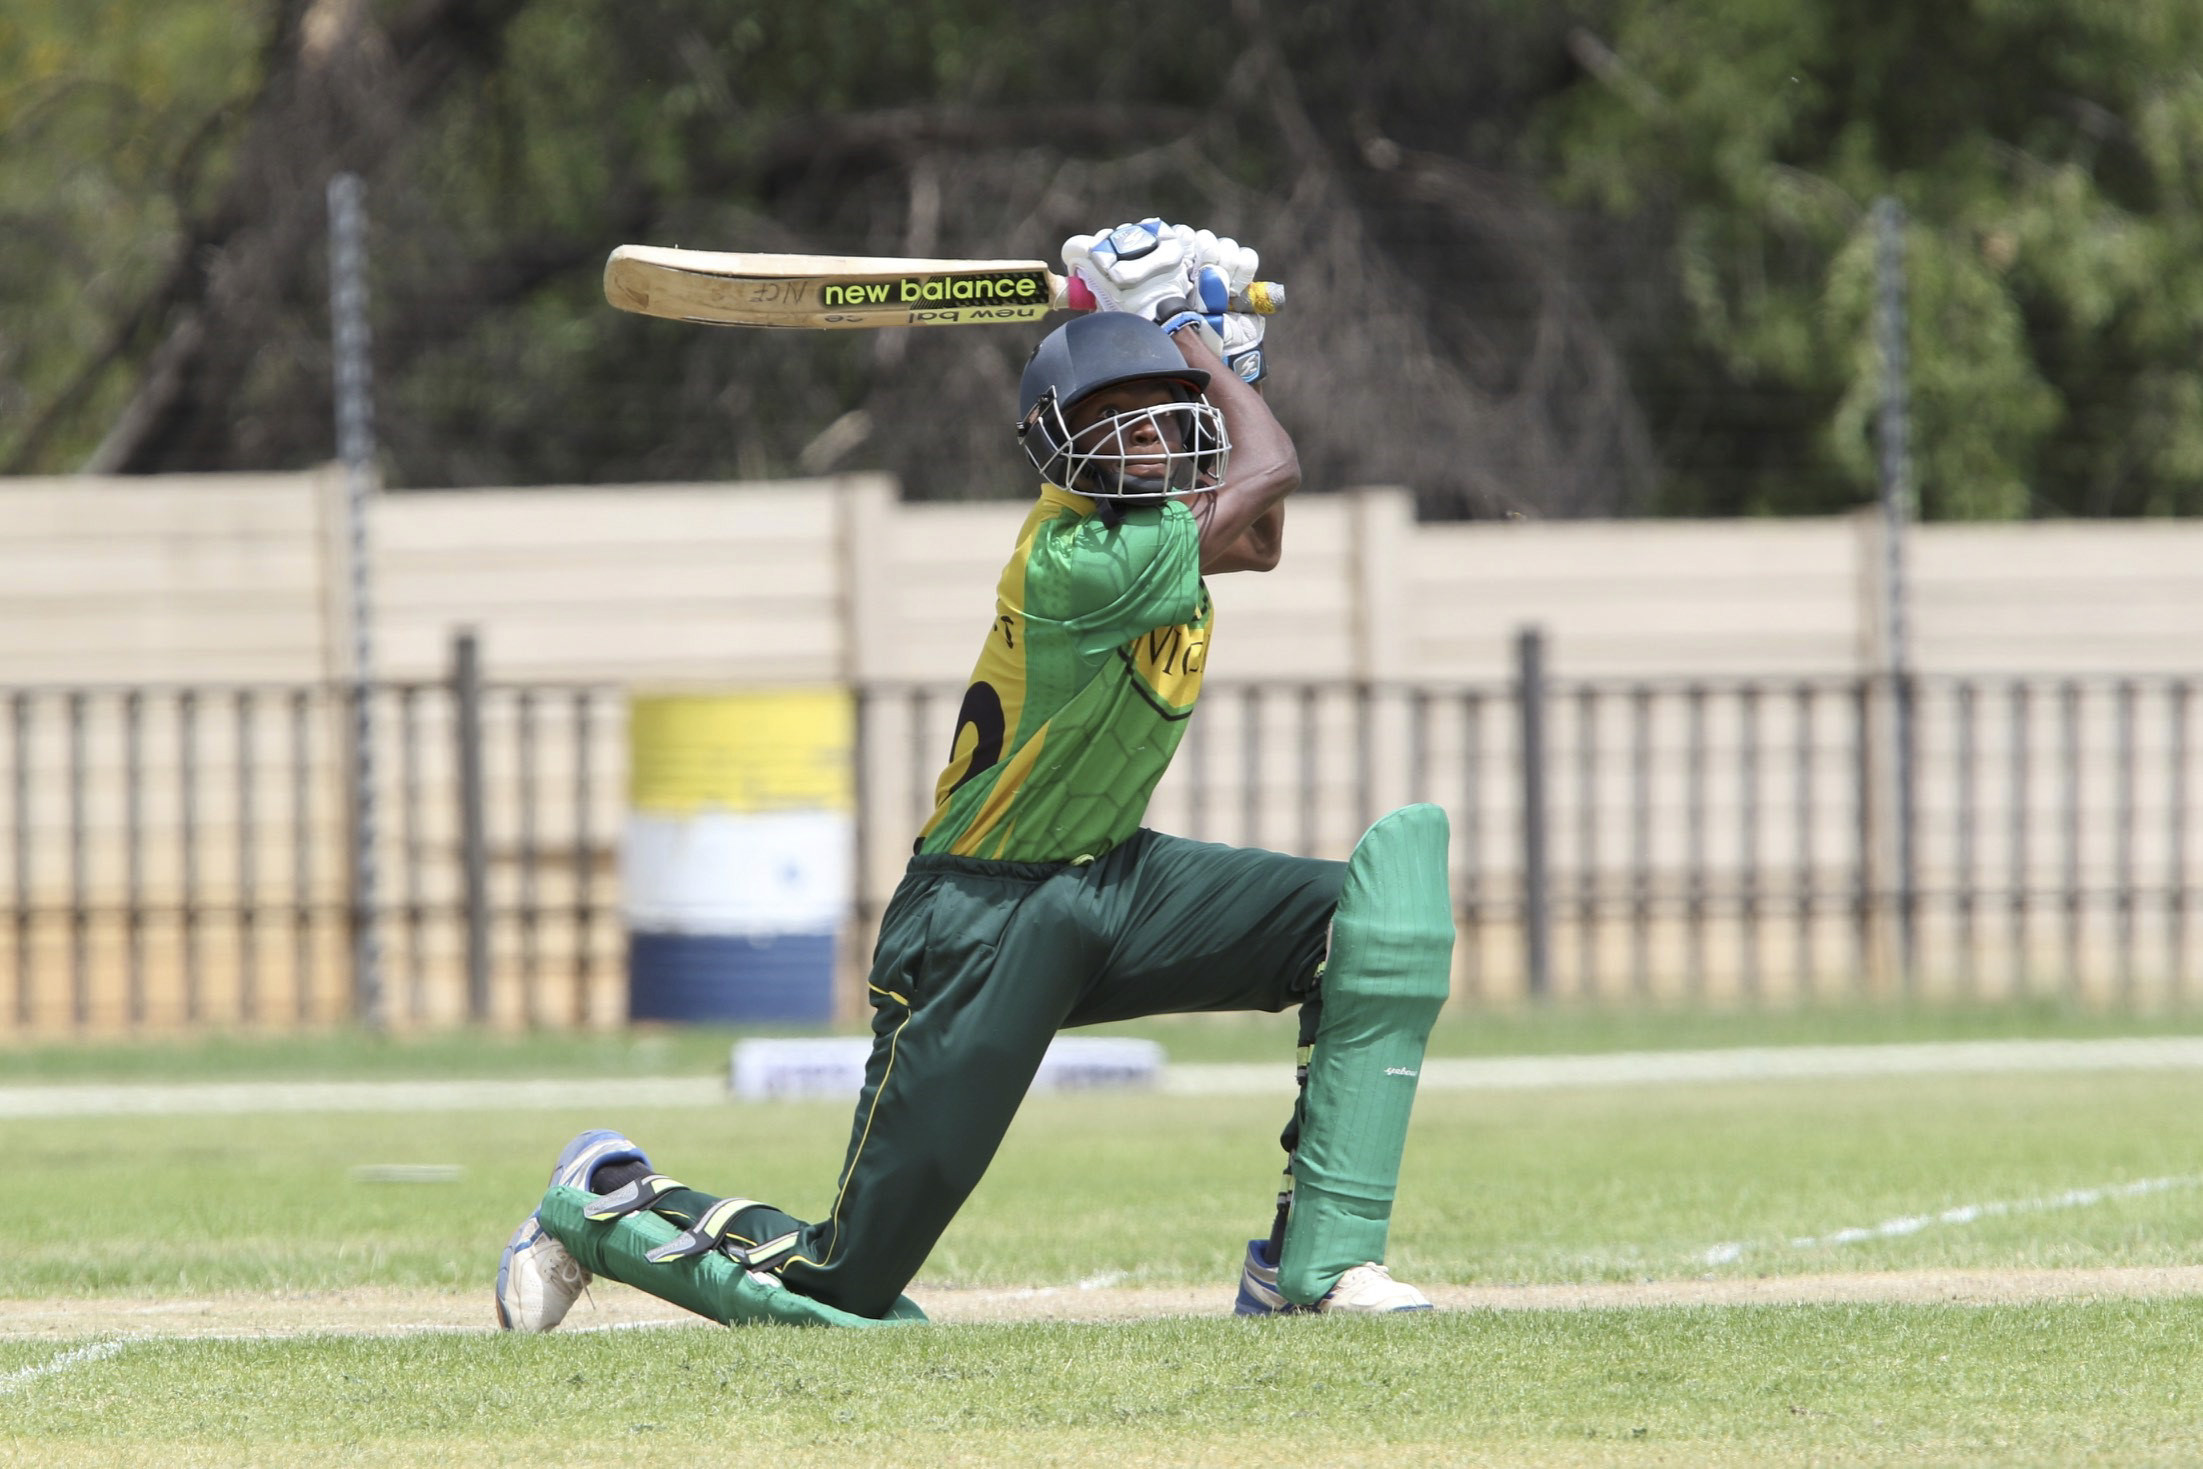 23 March 2019: Samuel Mba won over Nigeria Cricket Federation president Adam Yahaya Ukwenya with his determination. He repaid the faith placed in him with a heroic performance against Uganda. (Photograph by International Cricket Council)